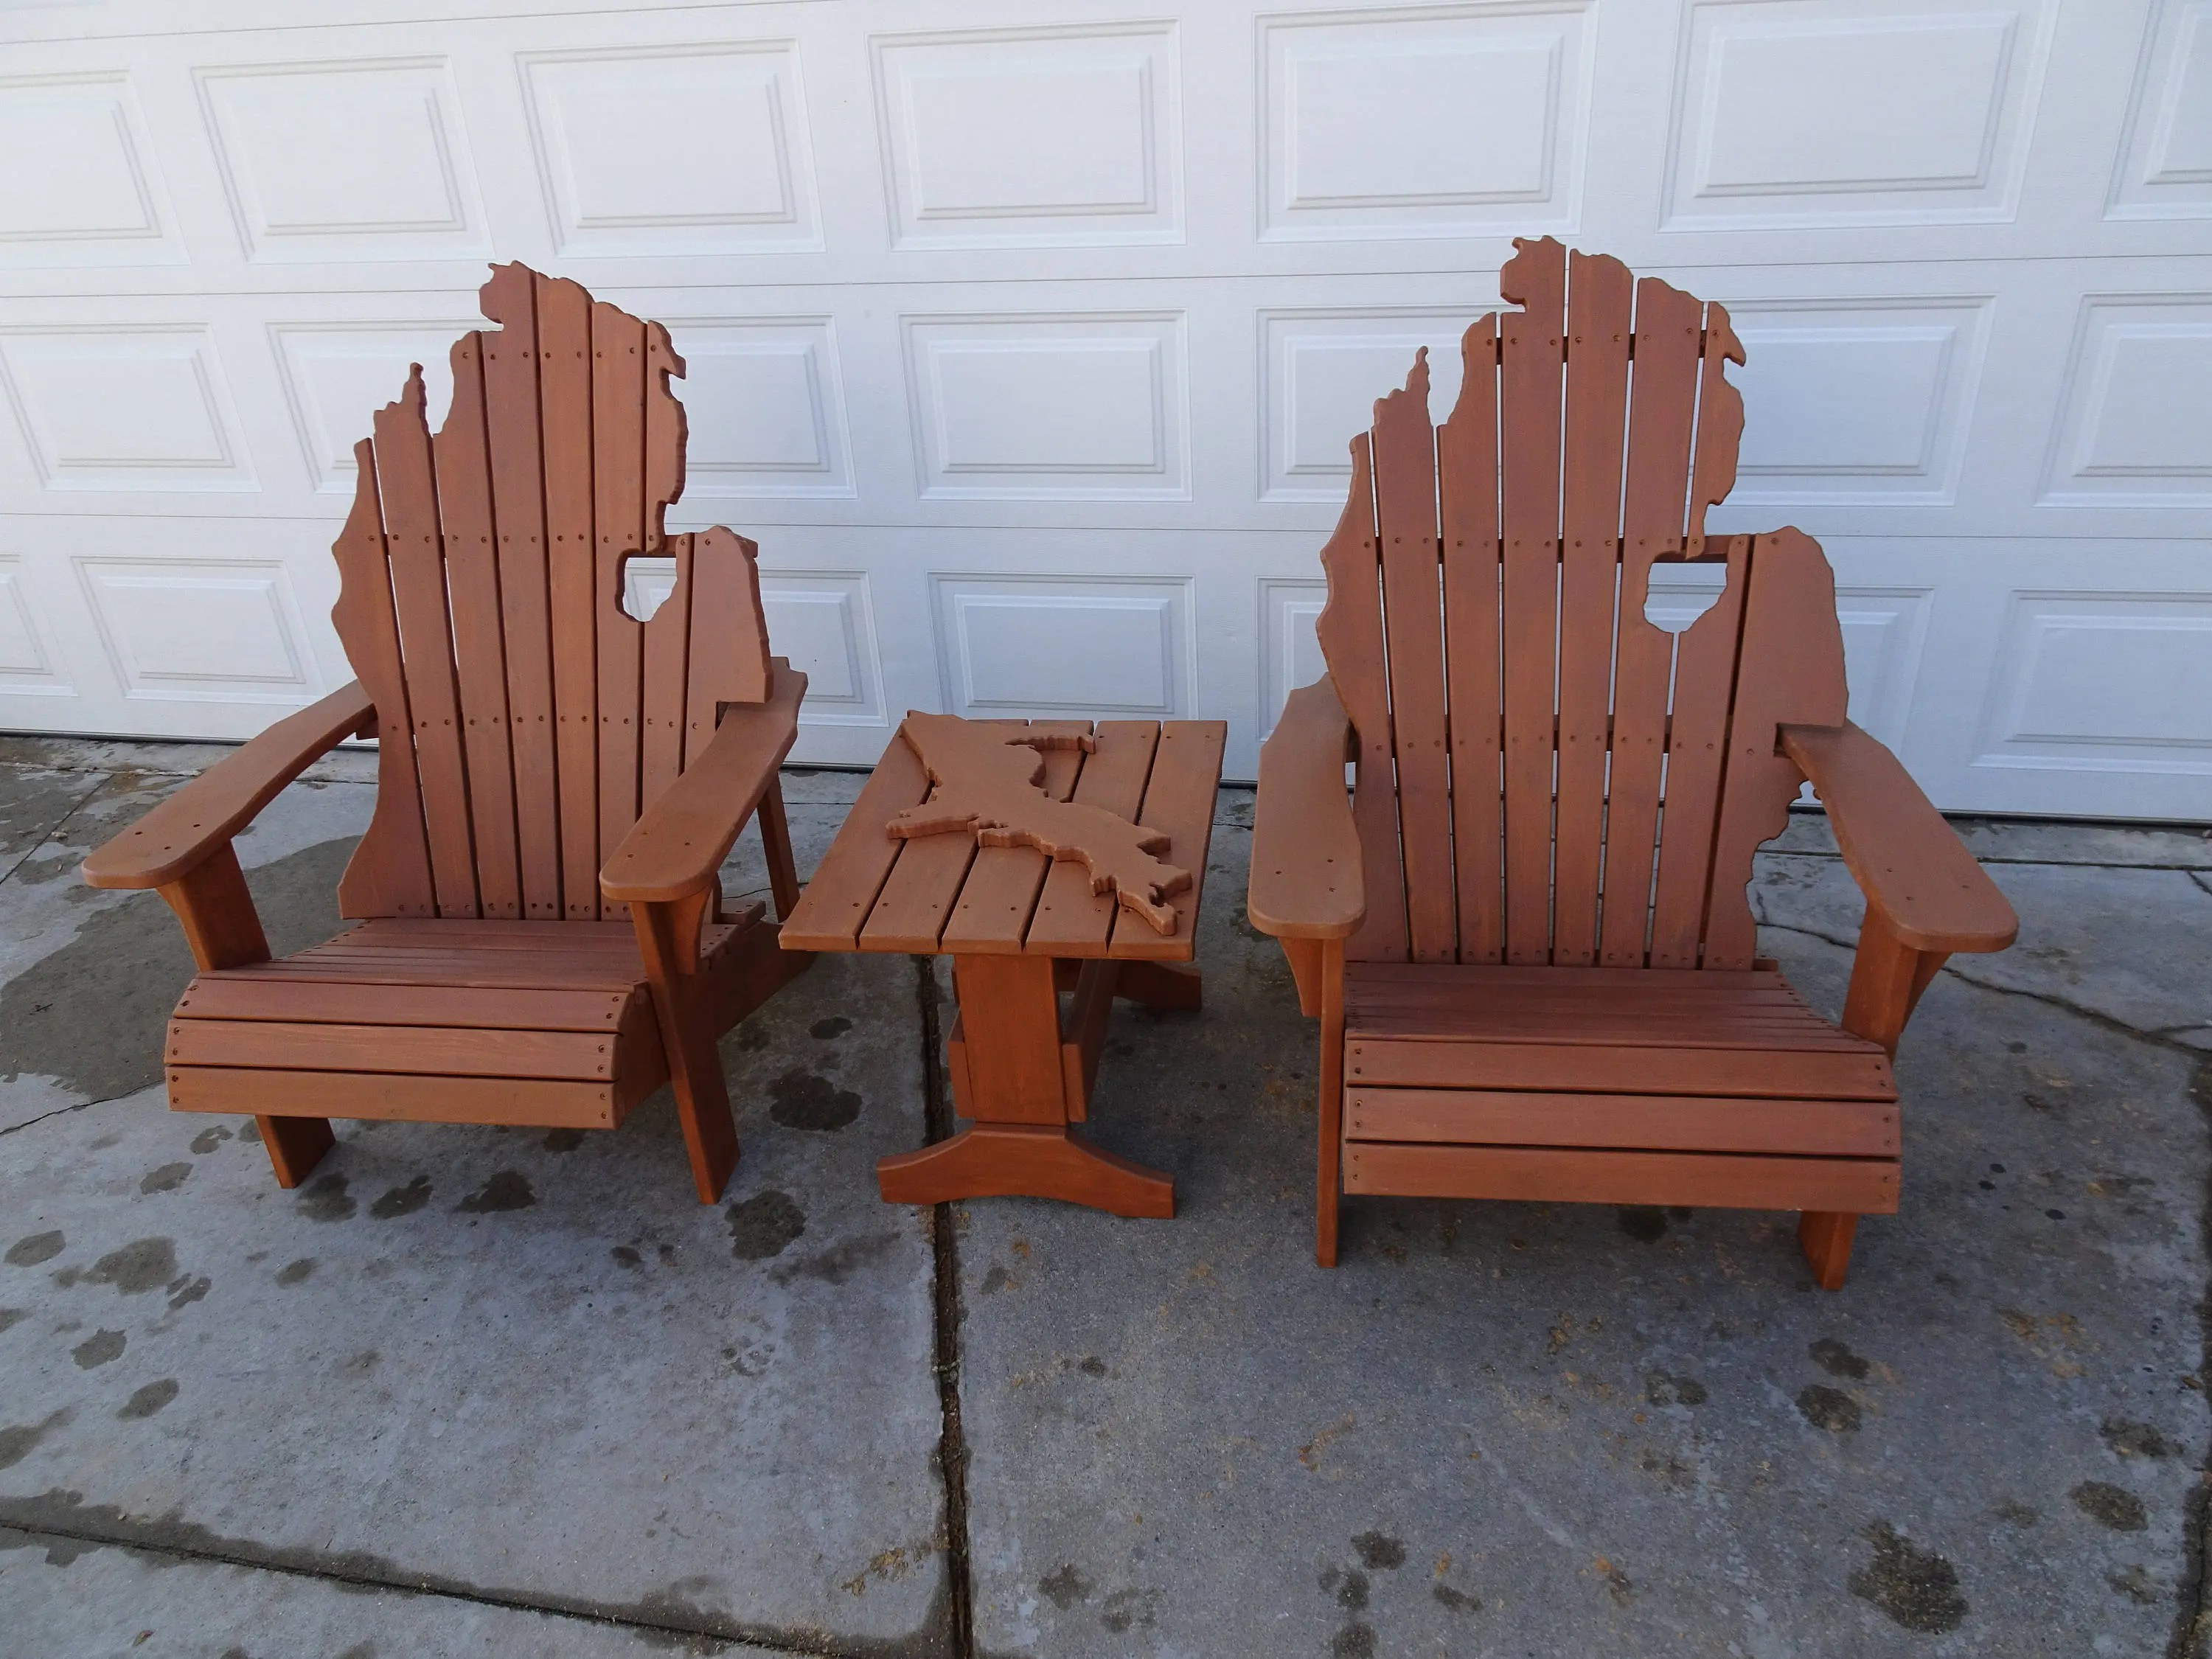 michigan adirondack chair wooden stool best hand select red cedar etsy image 0